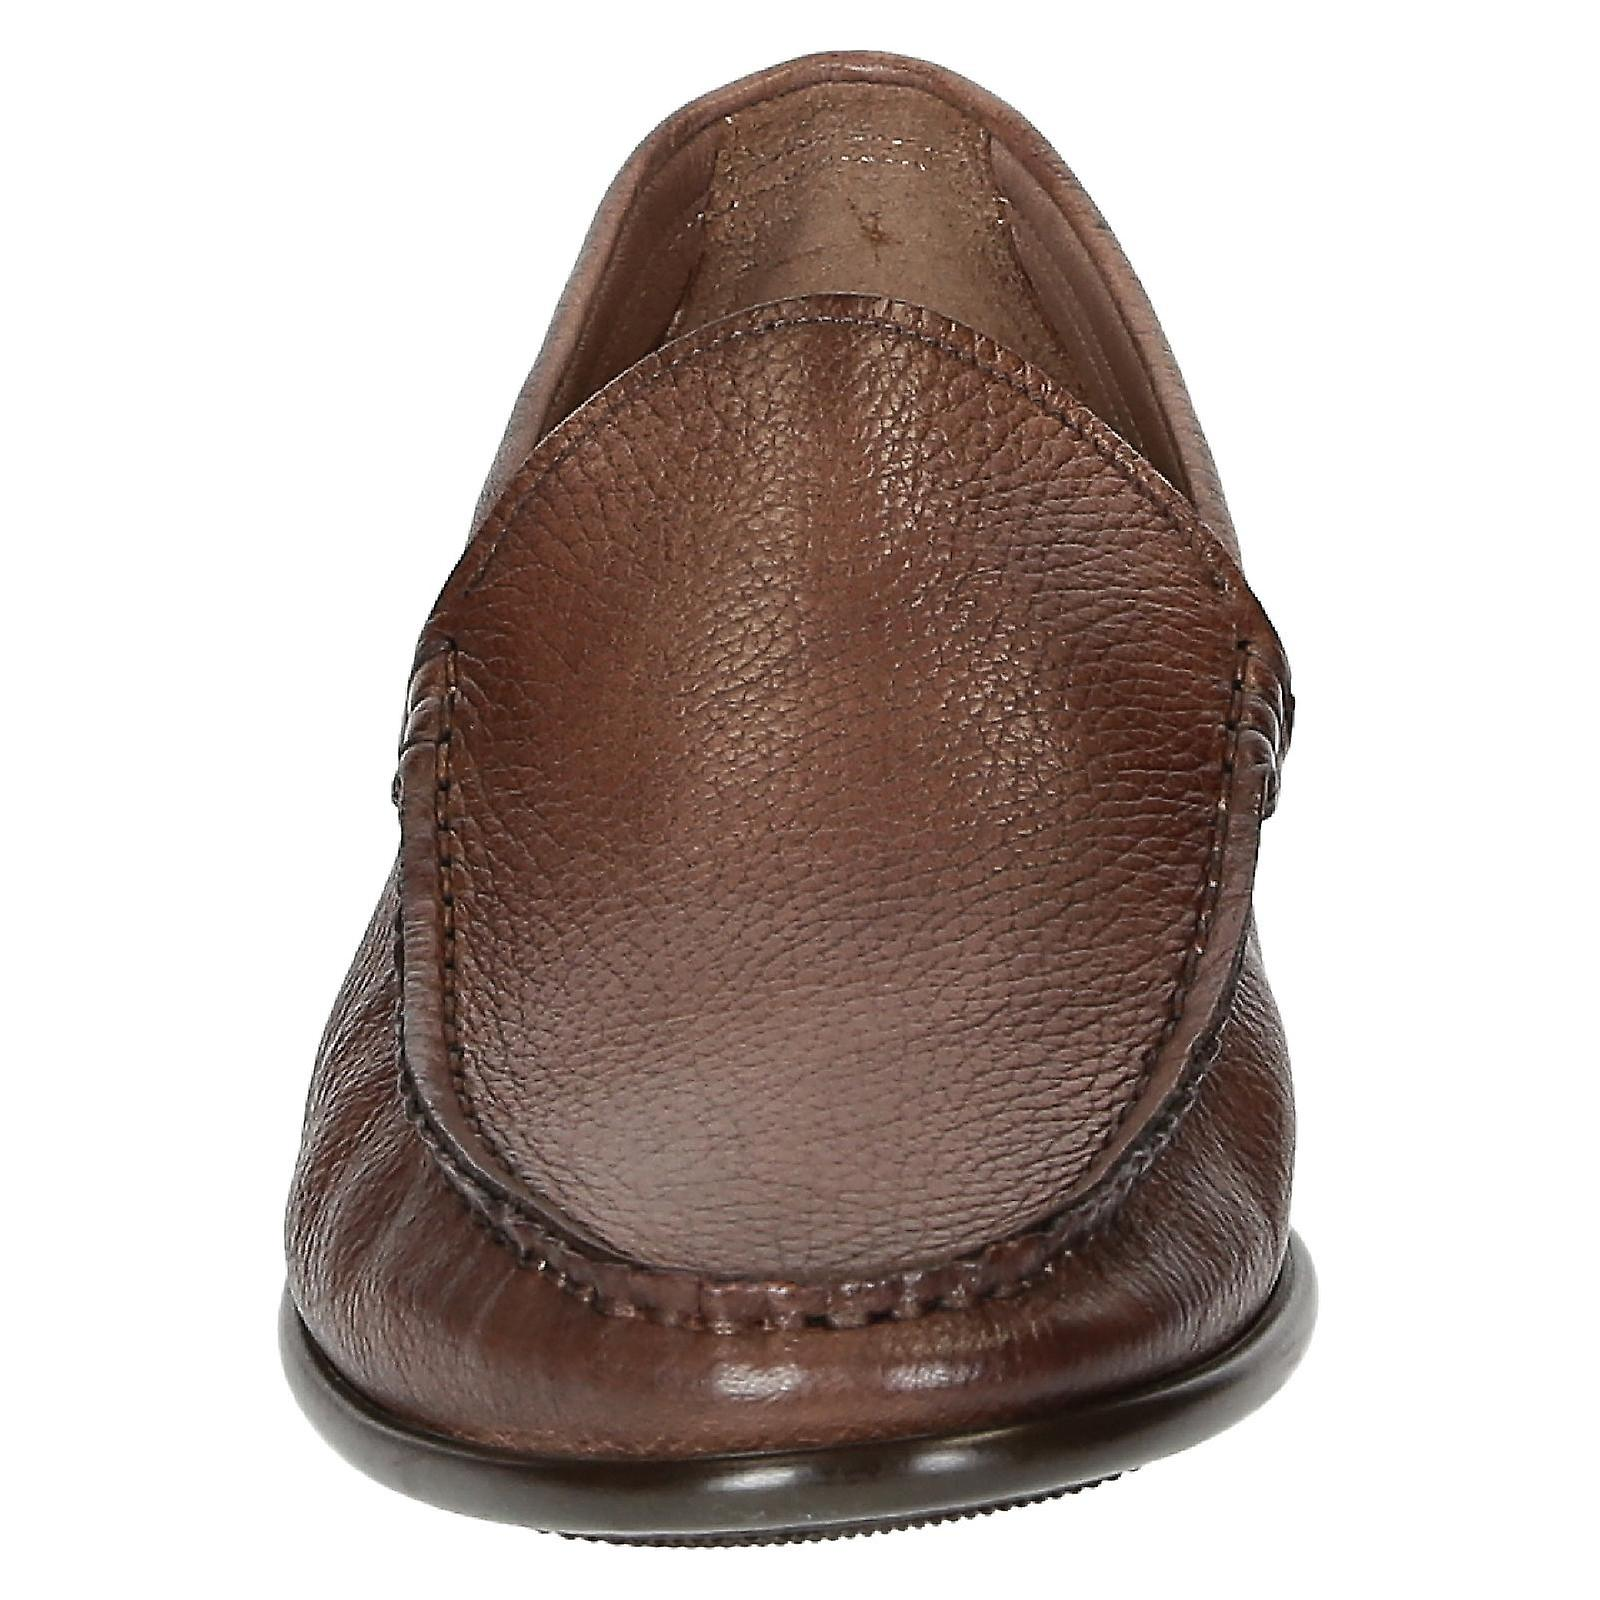 Brandy full grain leather handmade loafers for men